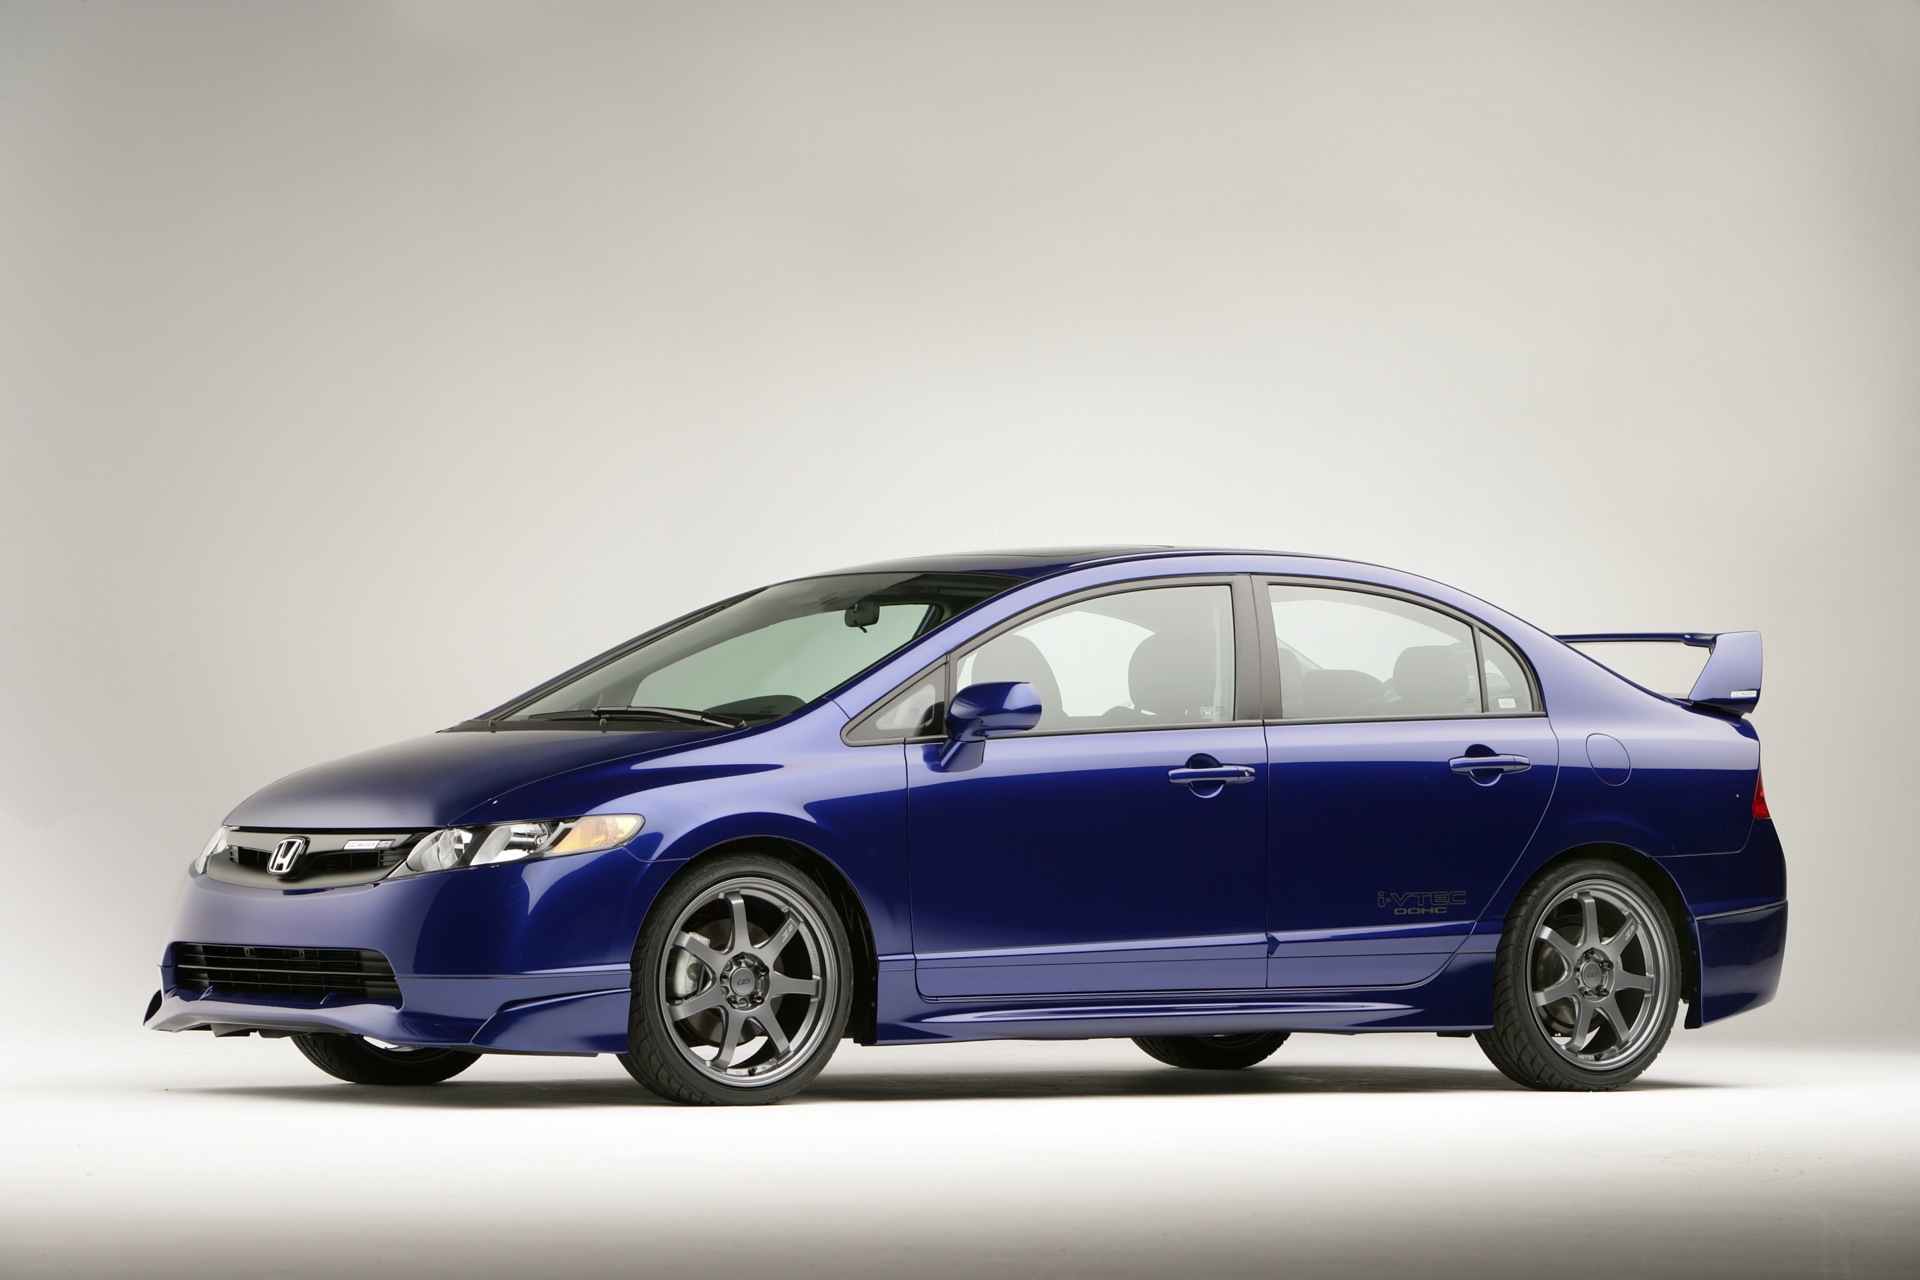 2008 Mugen Civic Si News and Information | conceptcarz.com